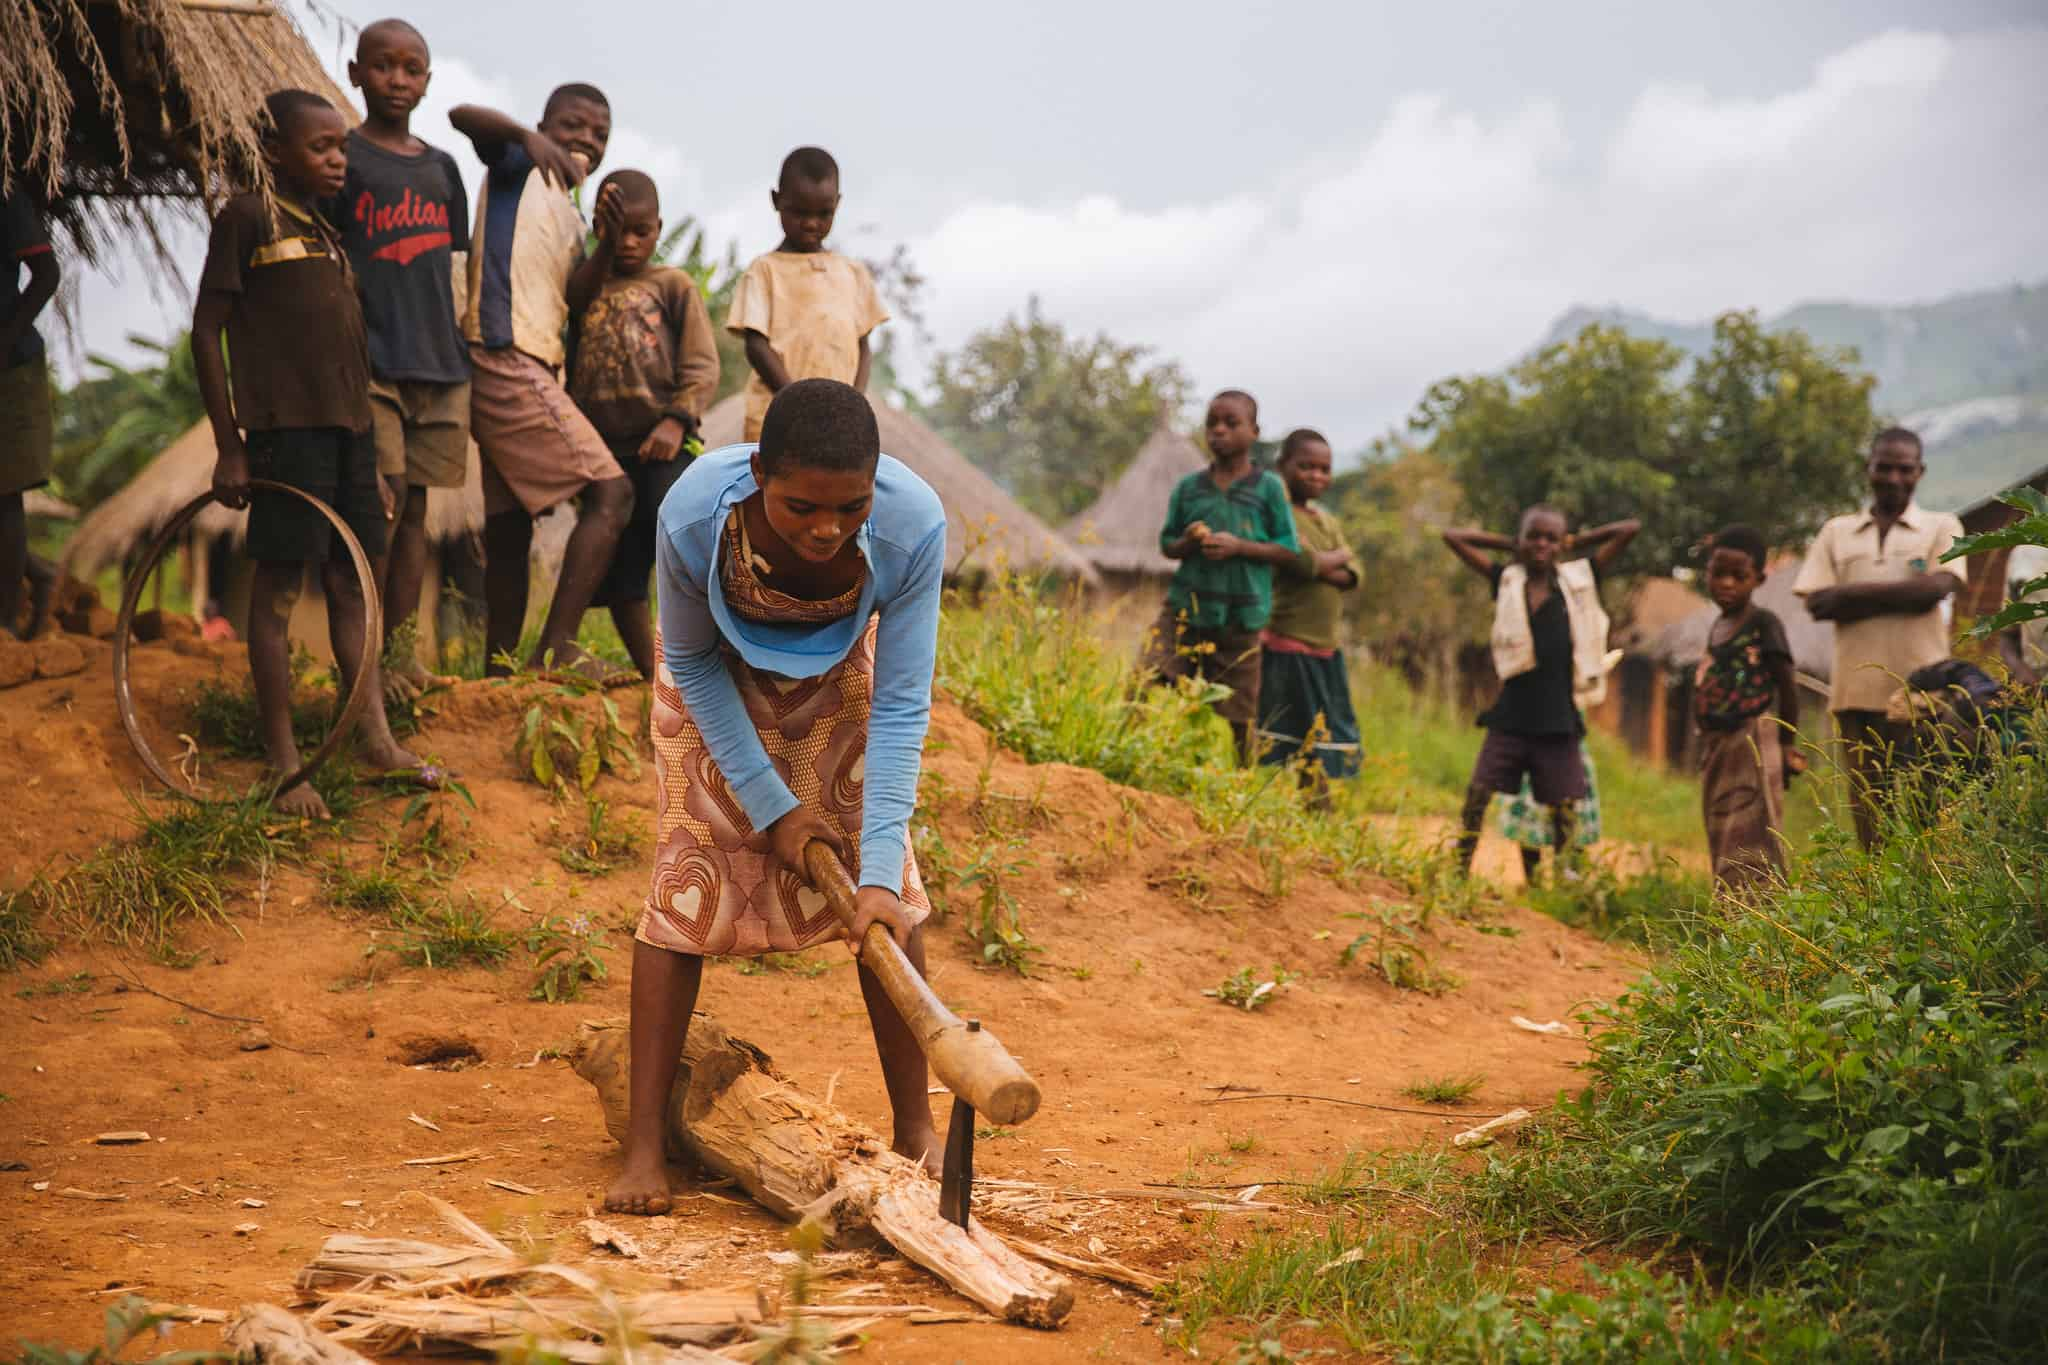 Young Women Chopping Wood as Group of Boys Watch, Malawi